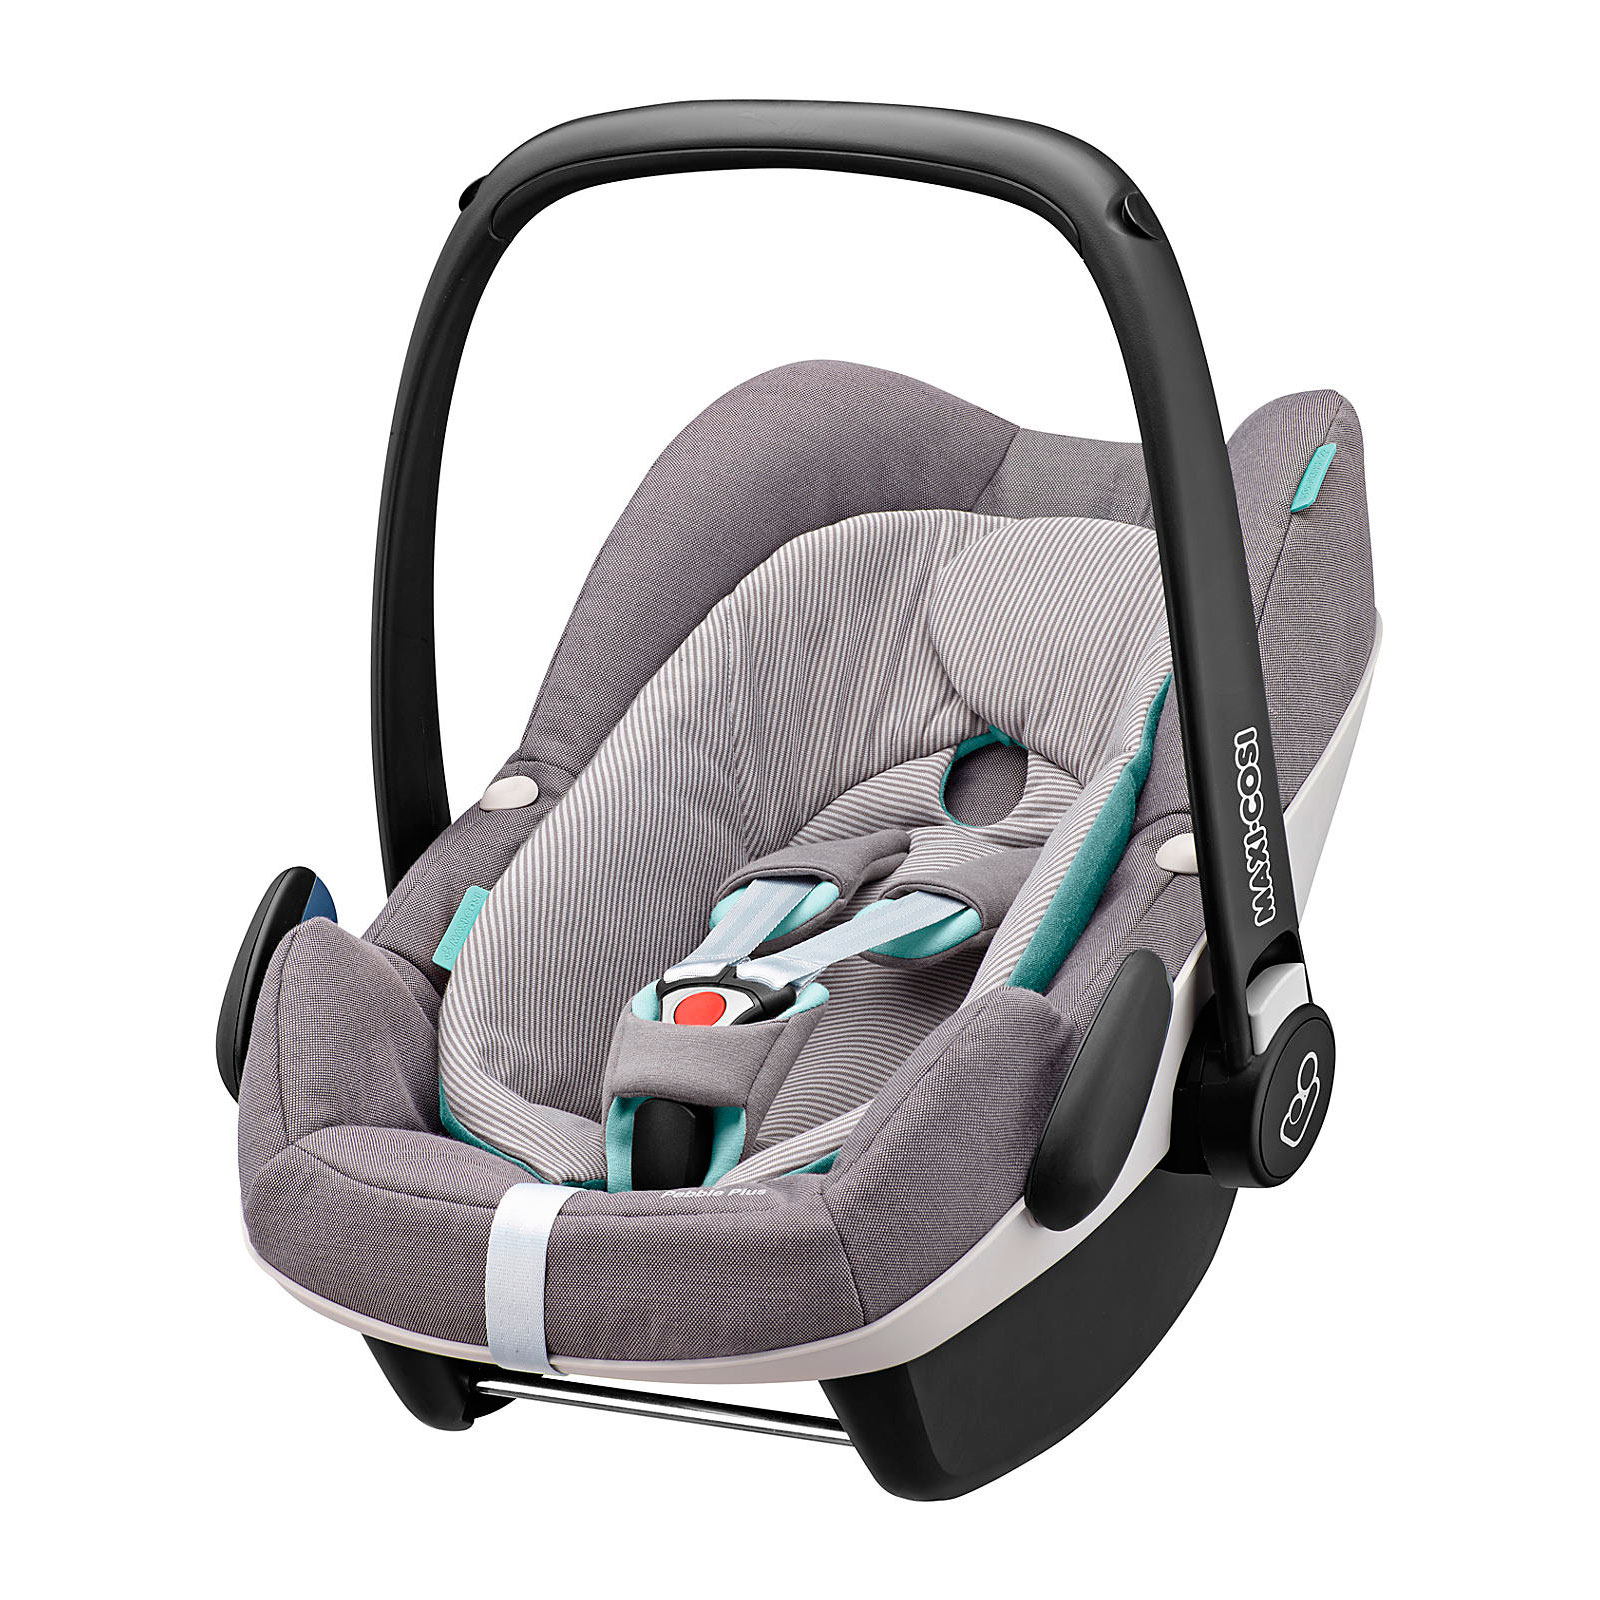 Автокресло Maxi-Cosi Pebble + Concrete Grey<br>